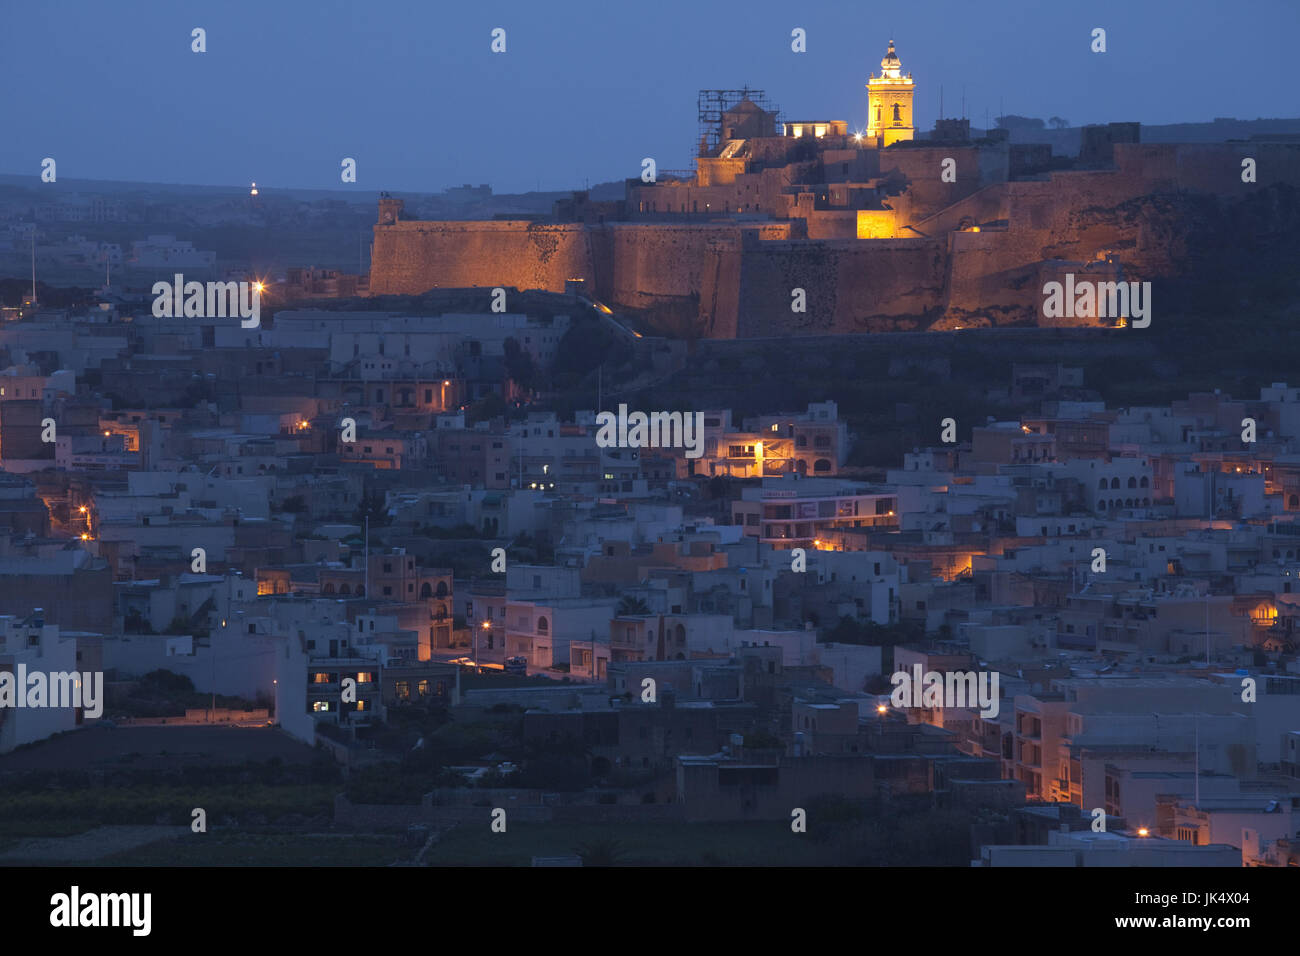 Malta, Gozo Island, Victoria-Rabat, elevated view of town and Il-Kastell fortress, dusk - Stock Image